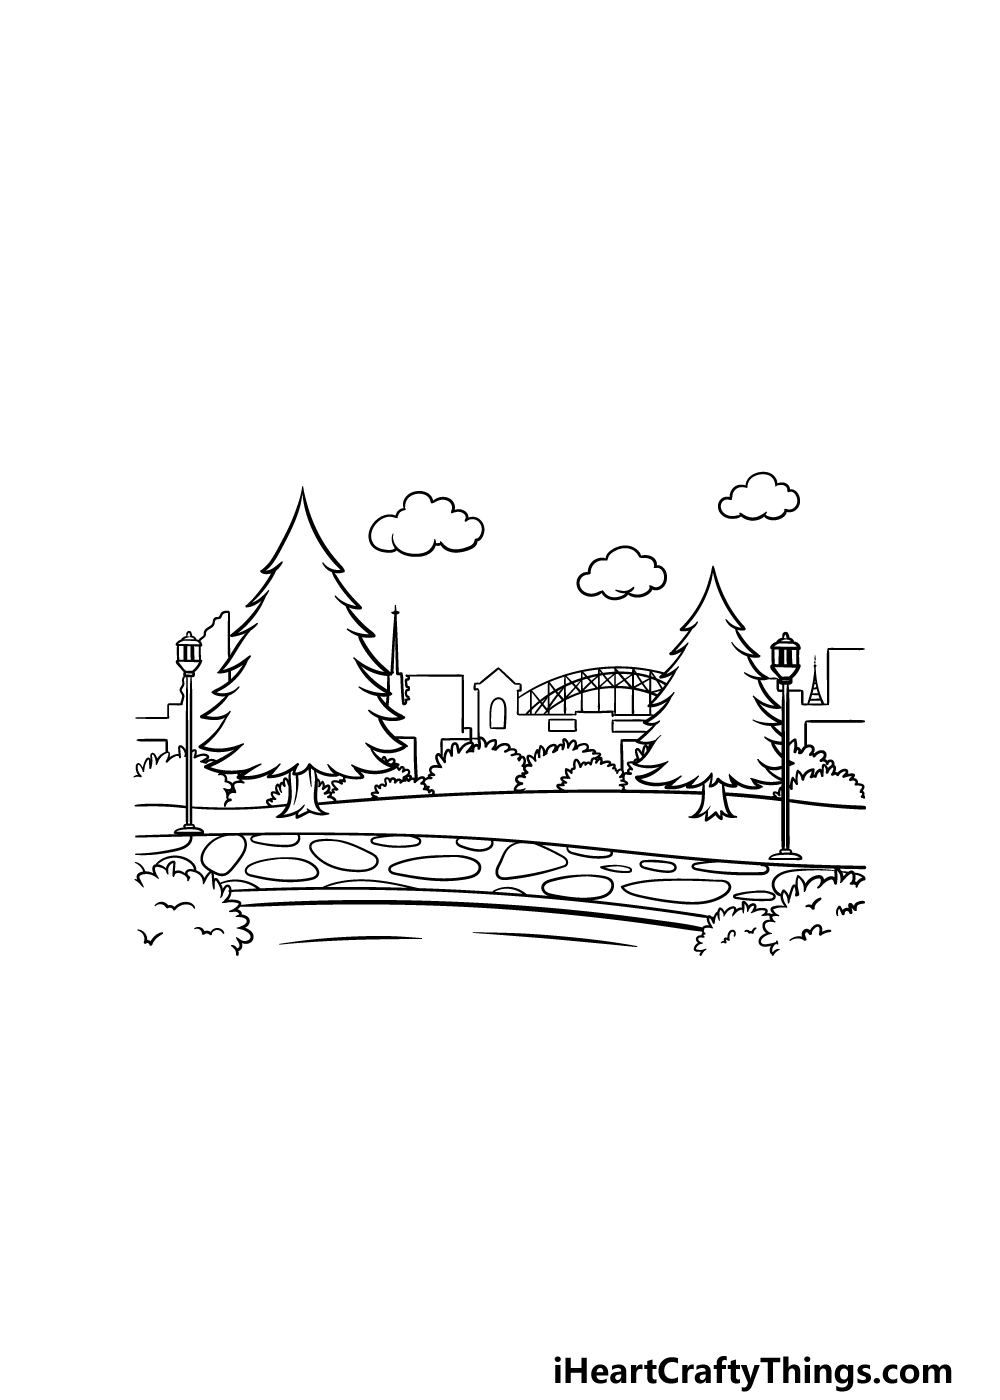 drawing a park step 5